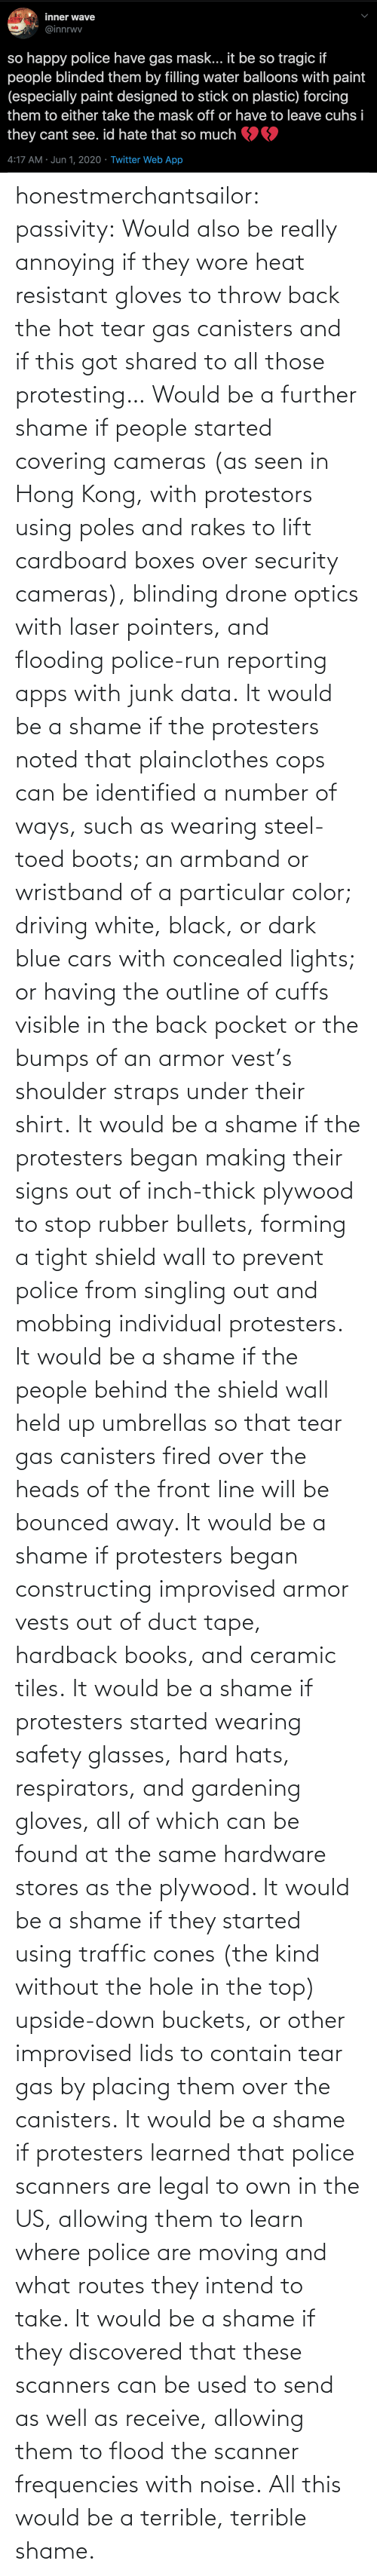 Us: honestmerchantsailor:  passivity: Would also be really annoying if they wore heat resistant gloves to throw back the hot tear gas canisters and if this got shared to all those protesting… Would be a further shame if people started covering cameras (as seen in Hong Kong, with protestors using poles and rakes to lift cardboard boxes over security cameras), blinding drone optics with laser pointers, and flooding police-run reporting apps with junk data. It would be a shame if the protesters noted that plainclothes cops can be identified a number of ways, such as wearing steel-toed boots; an armband or wristband of a particular color; driving white, black, or dark blue cars with concealed lights; or having the outline of cuffs visible in the back pocket or the bumps of an armor vest's shoulder straps under their shirt. It would be a shame if the protesters began making their signs out of inch-thick plywood to stop rubber bullets, forming a tight shield wall to prevent police from singling out and mobbing individual protesters. It would be a shame if the people behind the shield wall held up umbrellas so that tear gas canisters fired over the heads of the front line will be bounced away. It would be a shame if protesters began constructing improvised armor vests out of duct tape, hardback books, and ceramic tiles. It would be a shame if protesters started wearing safety glasses, hard hats, respirators, and gardening gloves, all of which can be found at the same hardware stores as the plywood. It would be a shame if they started using traffic cones (the kind without the hole in the top) upside-down buckets, or other improvised lids to contain tear gas by placing them over the canisters. It would be a shame if protesters learned that police scanners are legal to own in the US, allowing them to learn where police are moving and what routes they intend to take. It would be a shame if they discovered that these scanners can be used to send as well as receive, allowing them to flood the scanner frequencies with noise. All this would be a terrible, terrible shame.